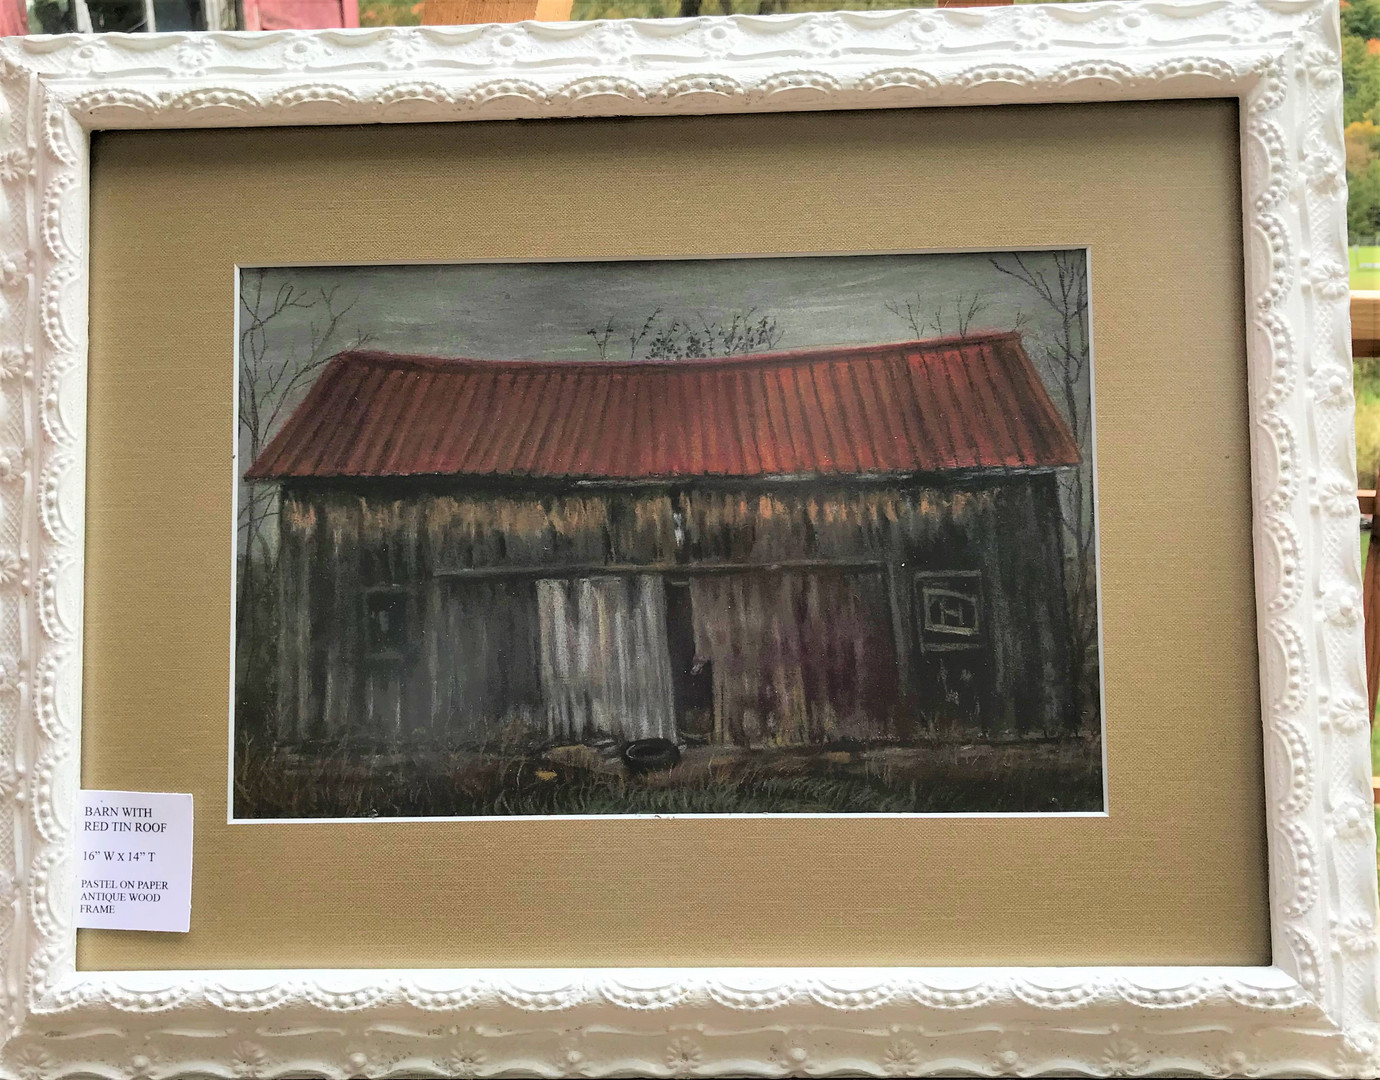 Barn With Red Tin Roof.jpg